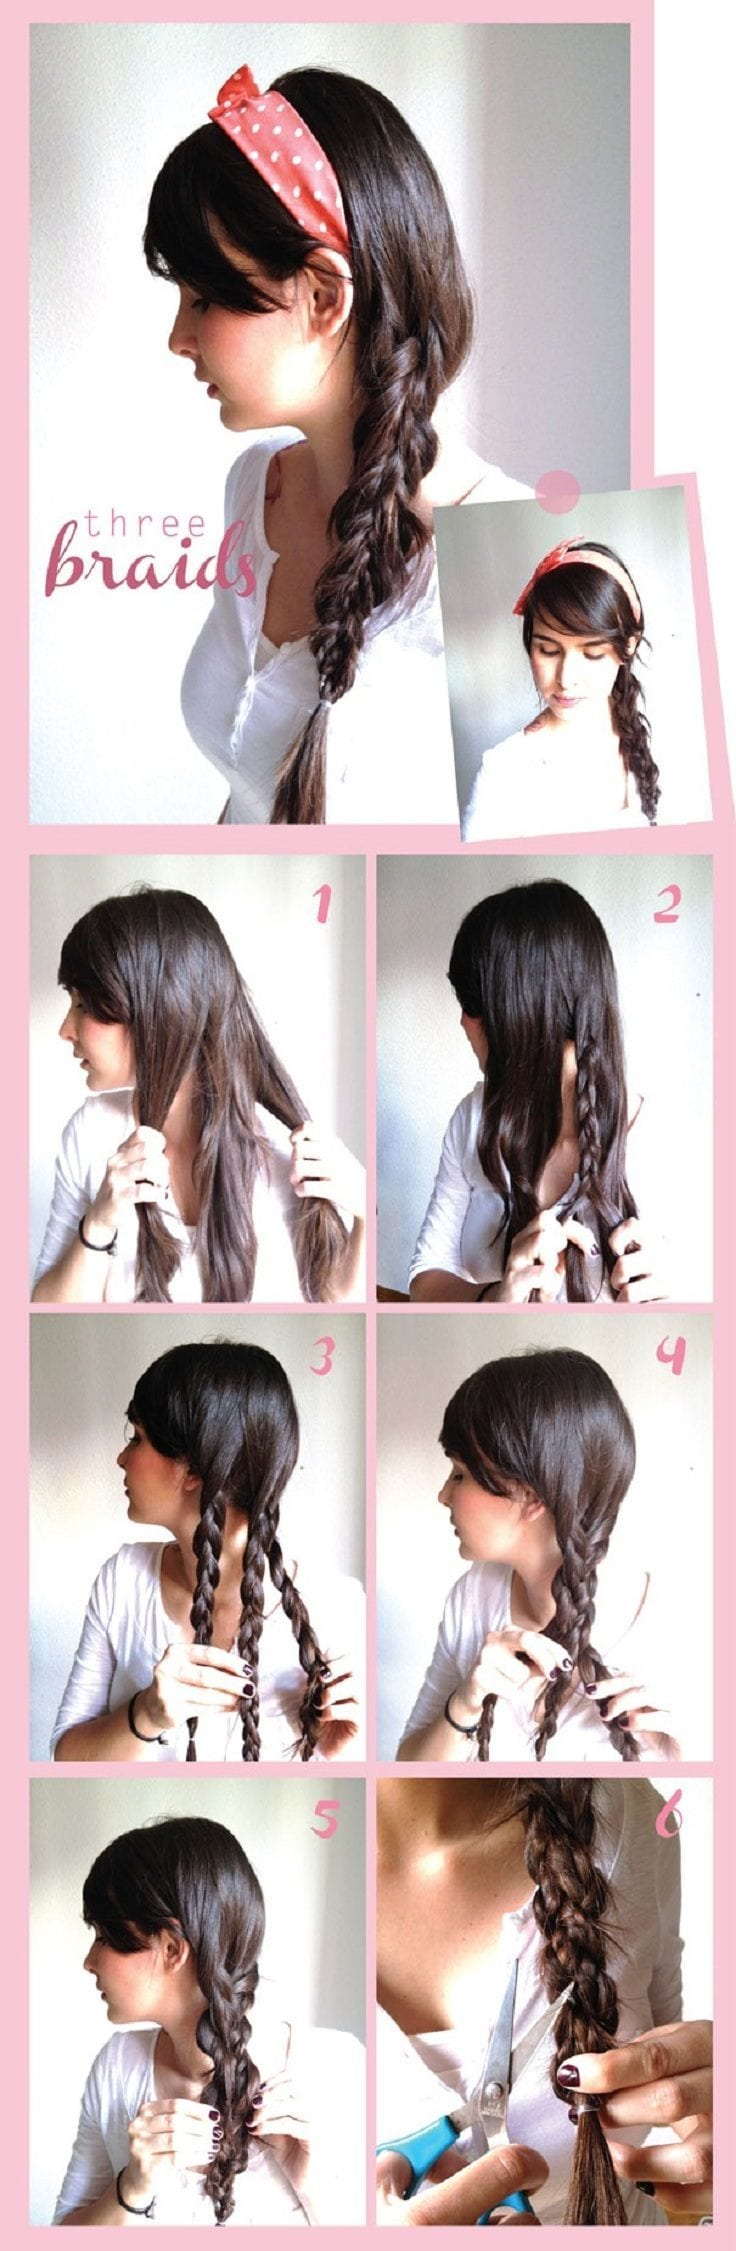 How To Braid Hair Step By Step With Pictures How To Wiki 89